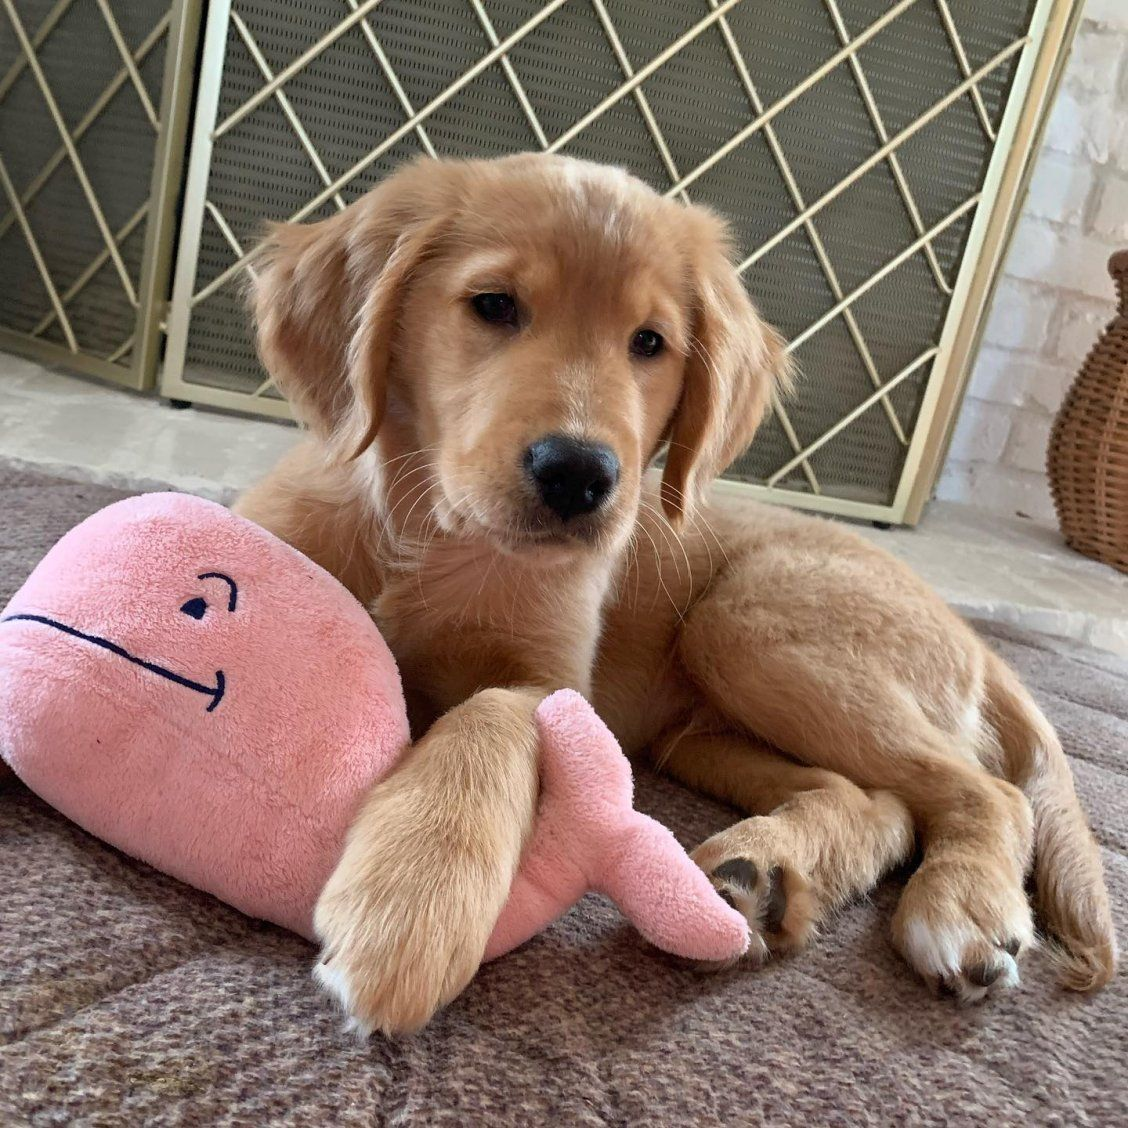 Pin by J on Pets in 2020 Super cute puppies, Cute dogs